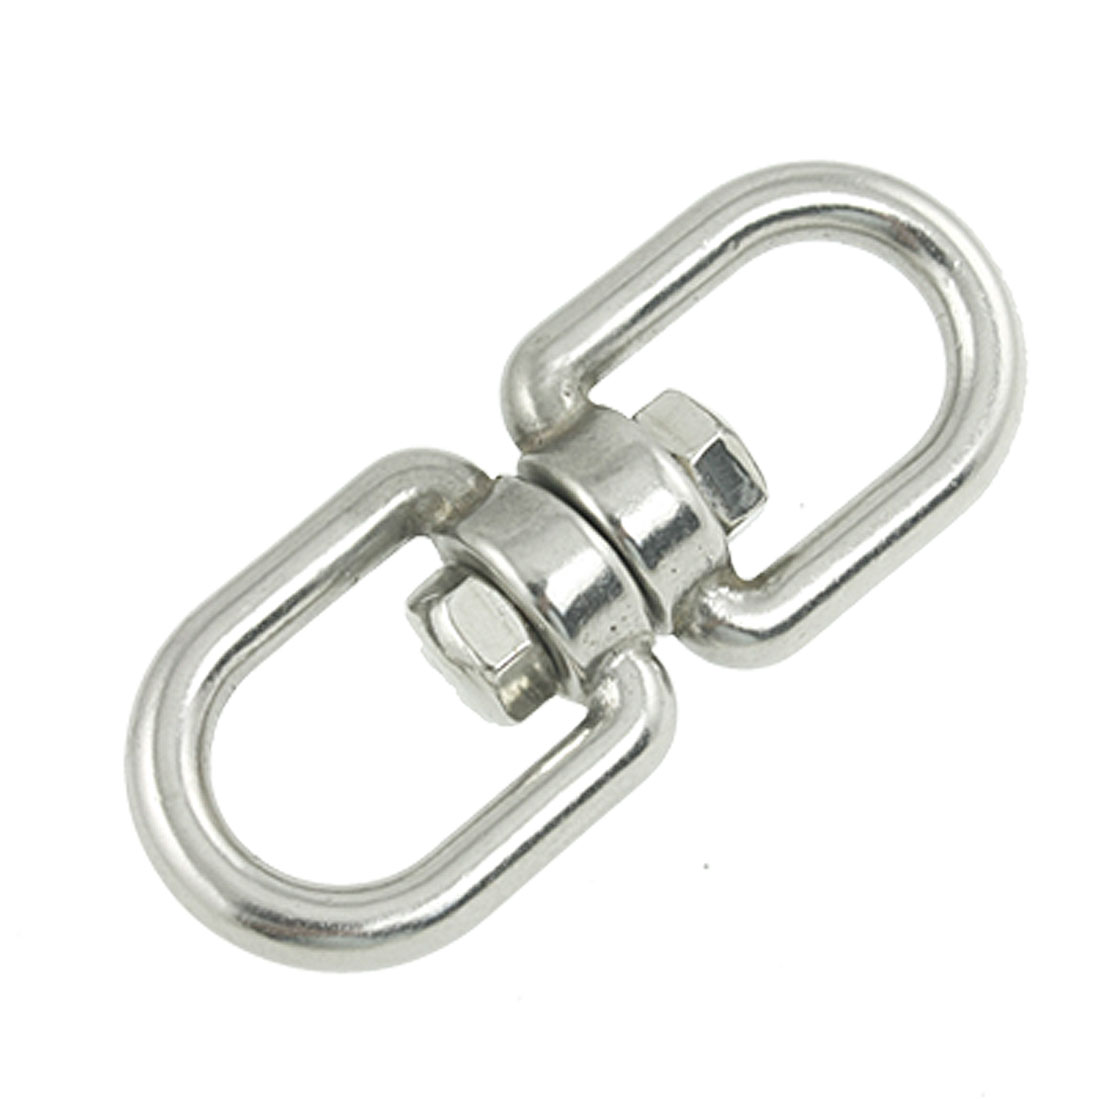 "Marine Mooring 1/4"" Eye to Eye Swivel 304 Stainless Steel Silver Tone"